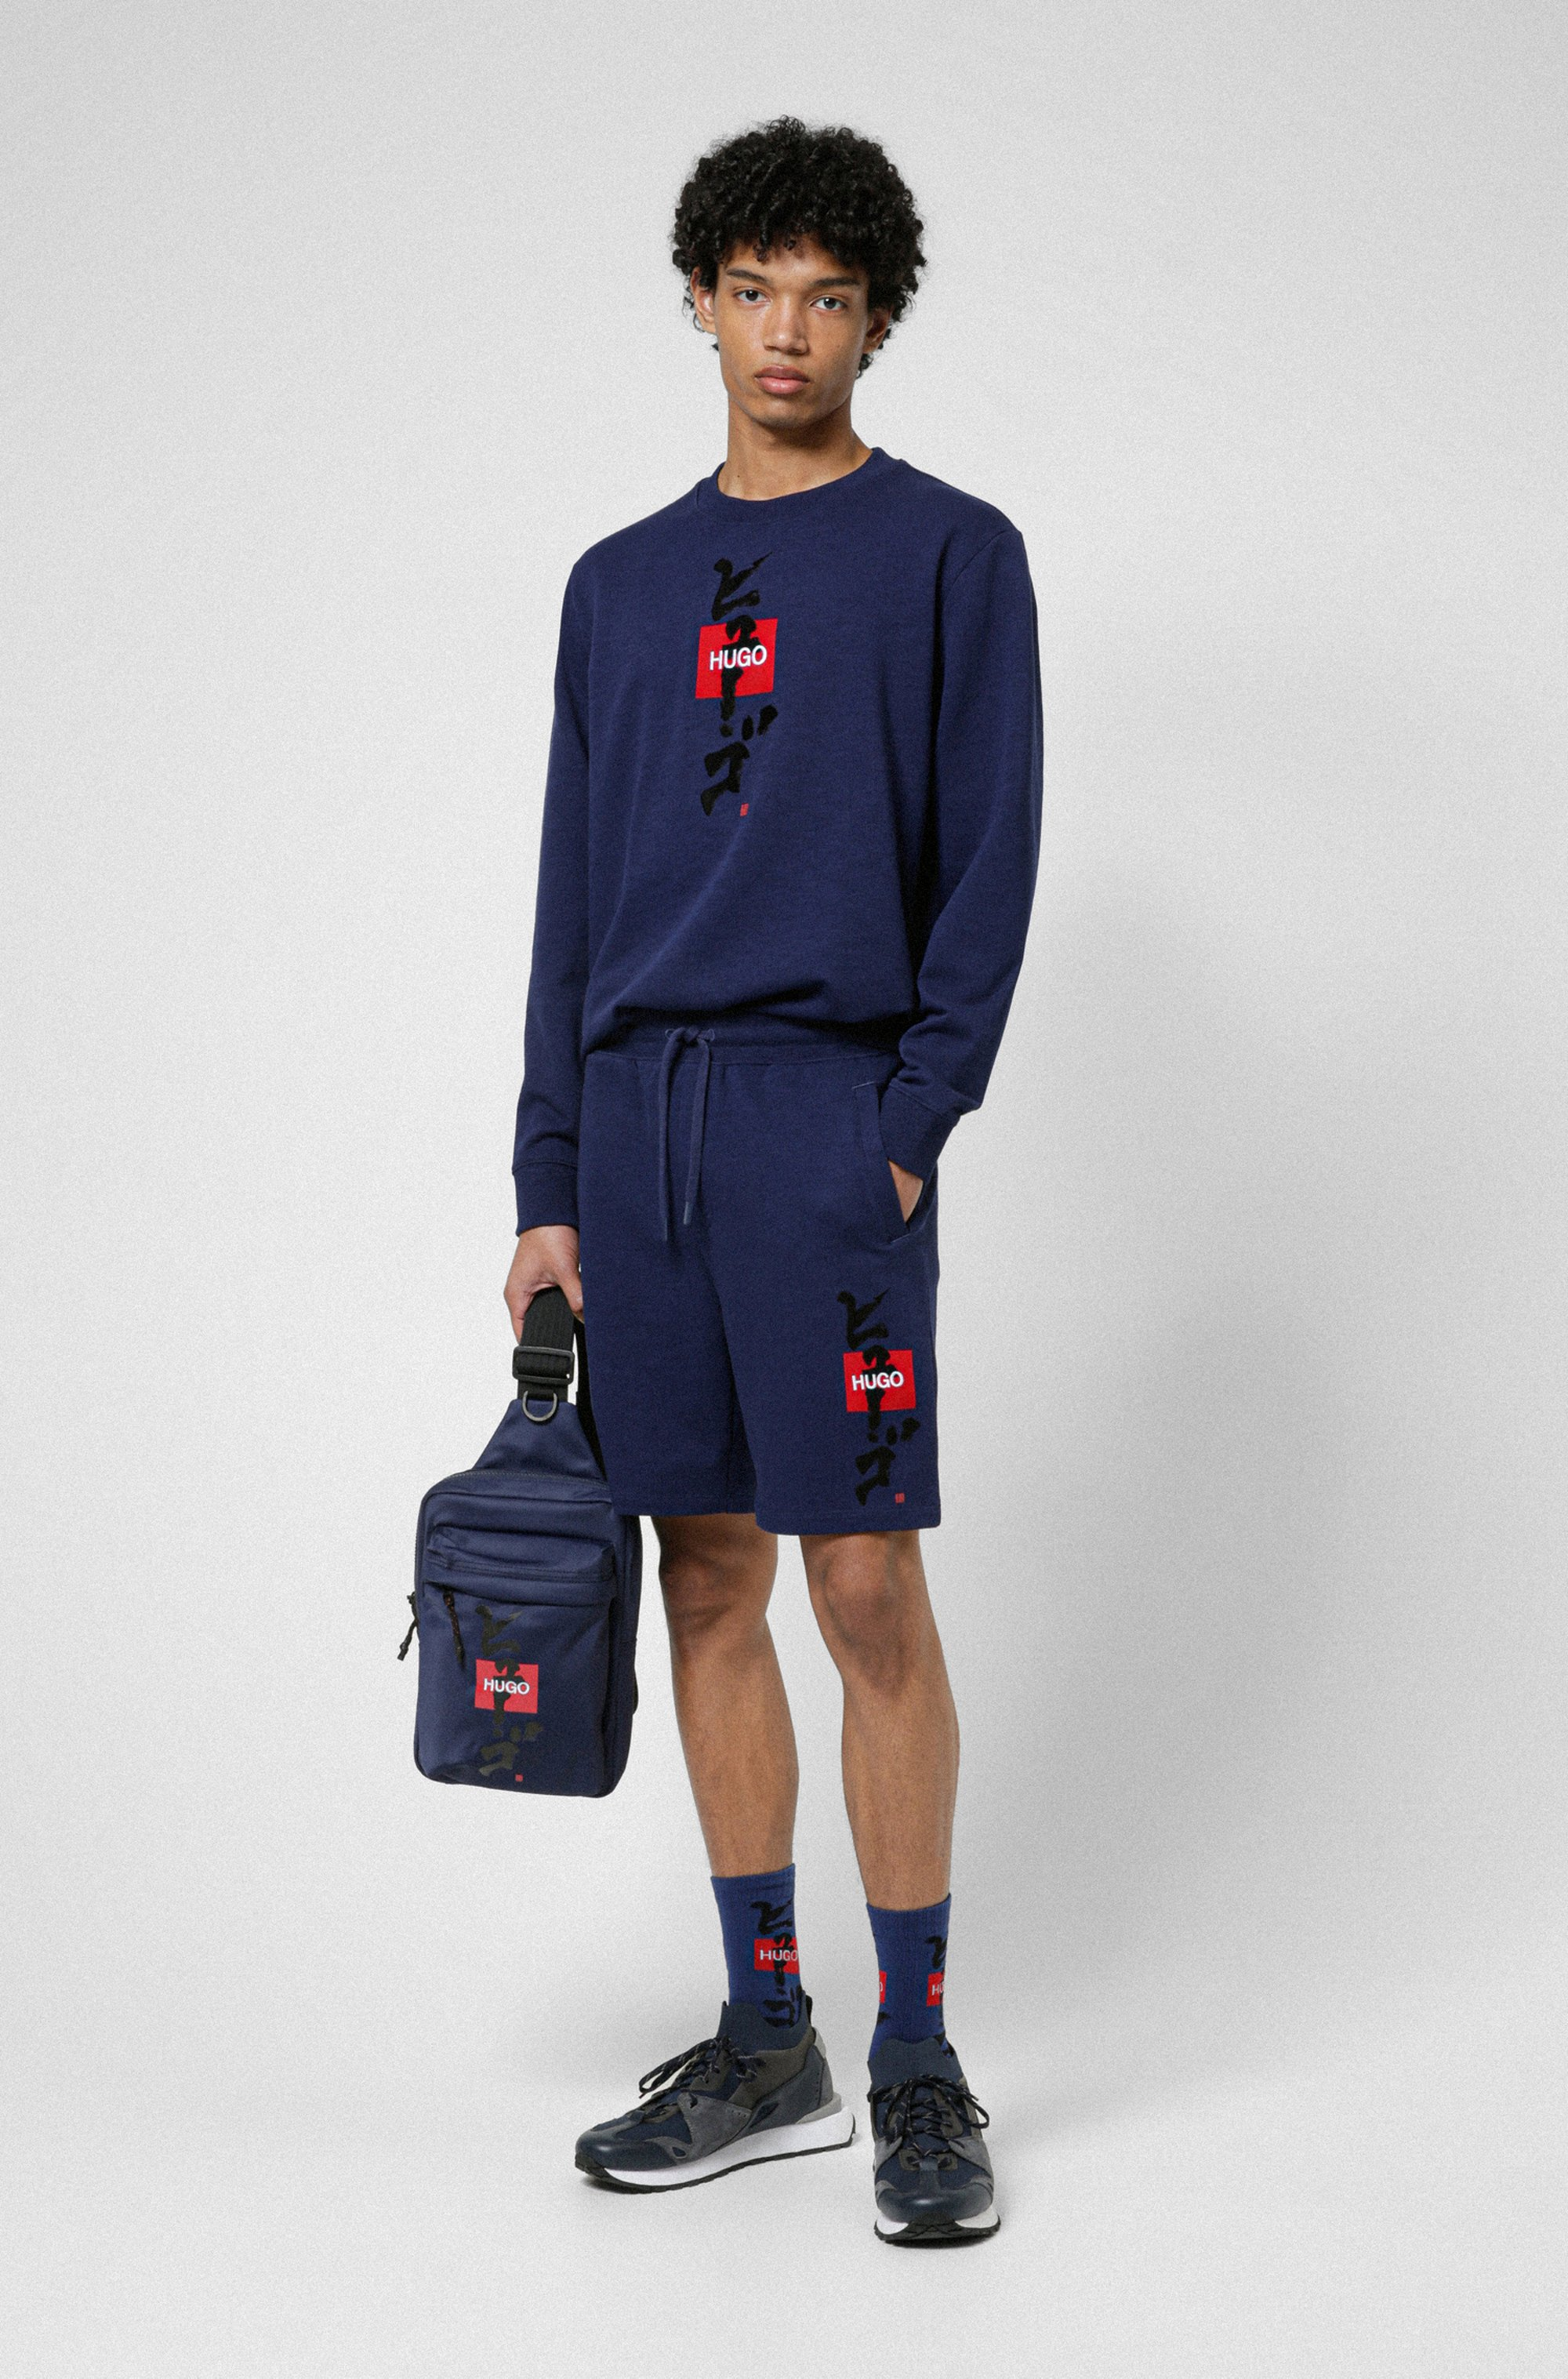 French-terry sweatshirt with logo and calligraphy artwork